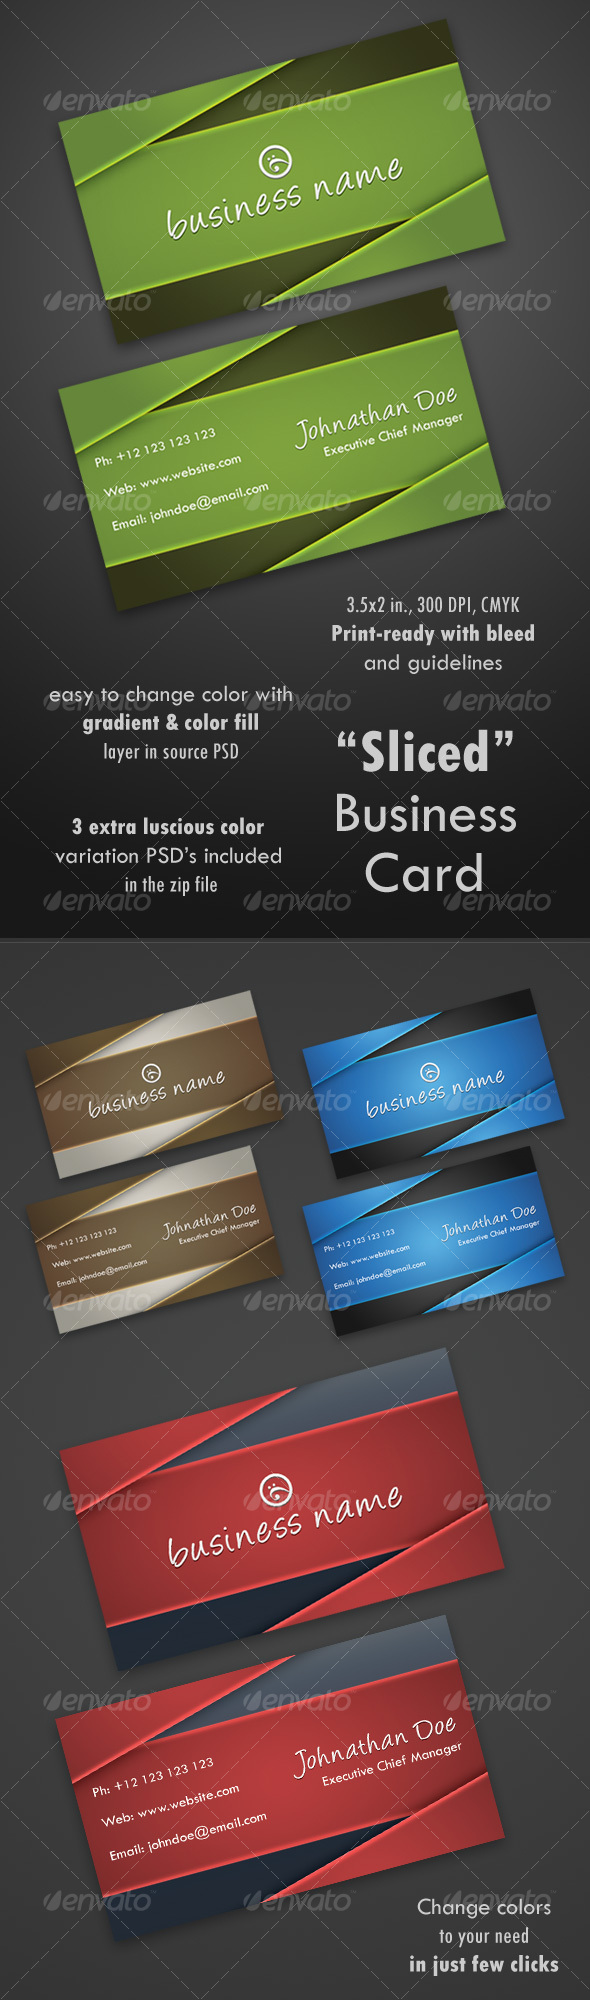 GraphicRiver Sliced Business Card 106793